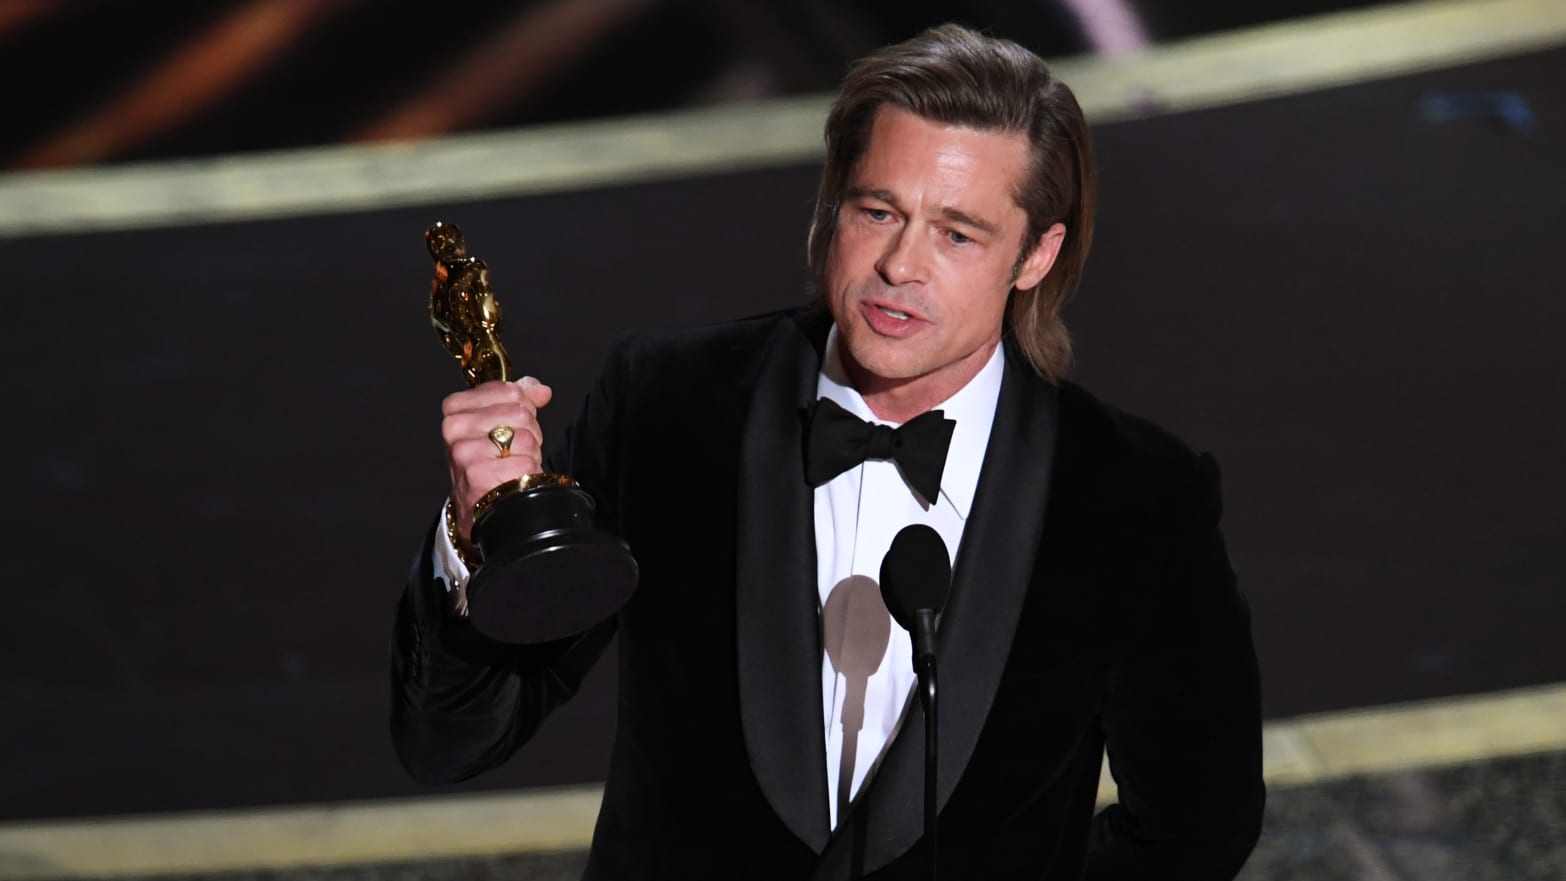 Brad Pitt Jokes About Trump Impeachment in Best Supporting Actor ...